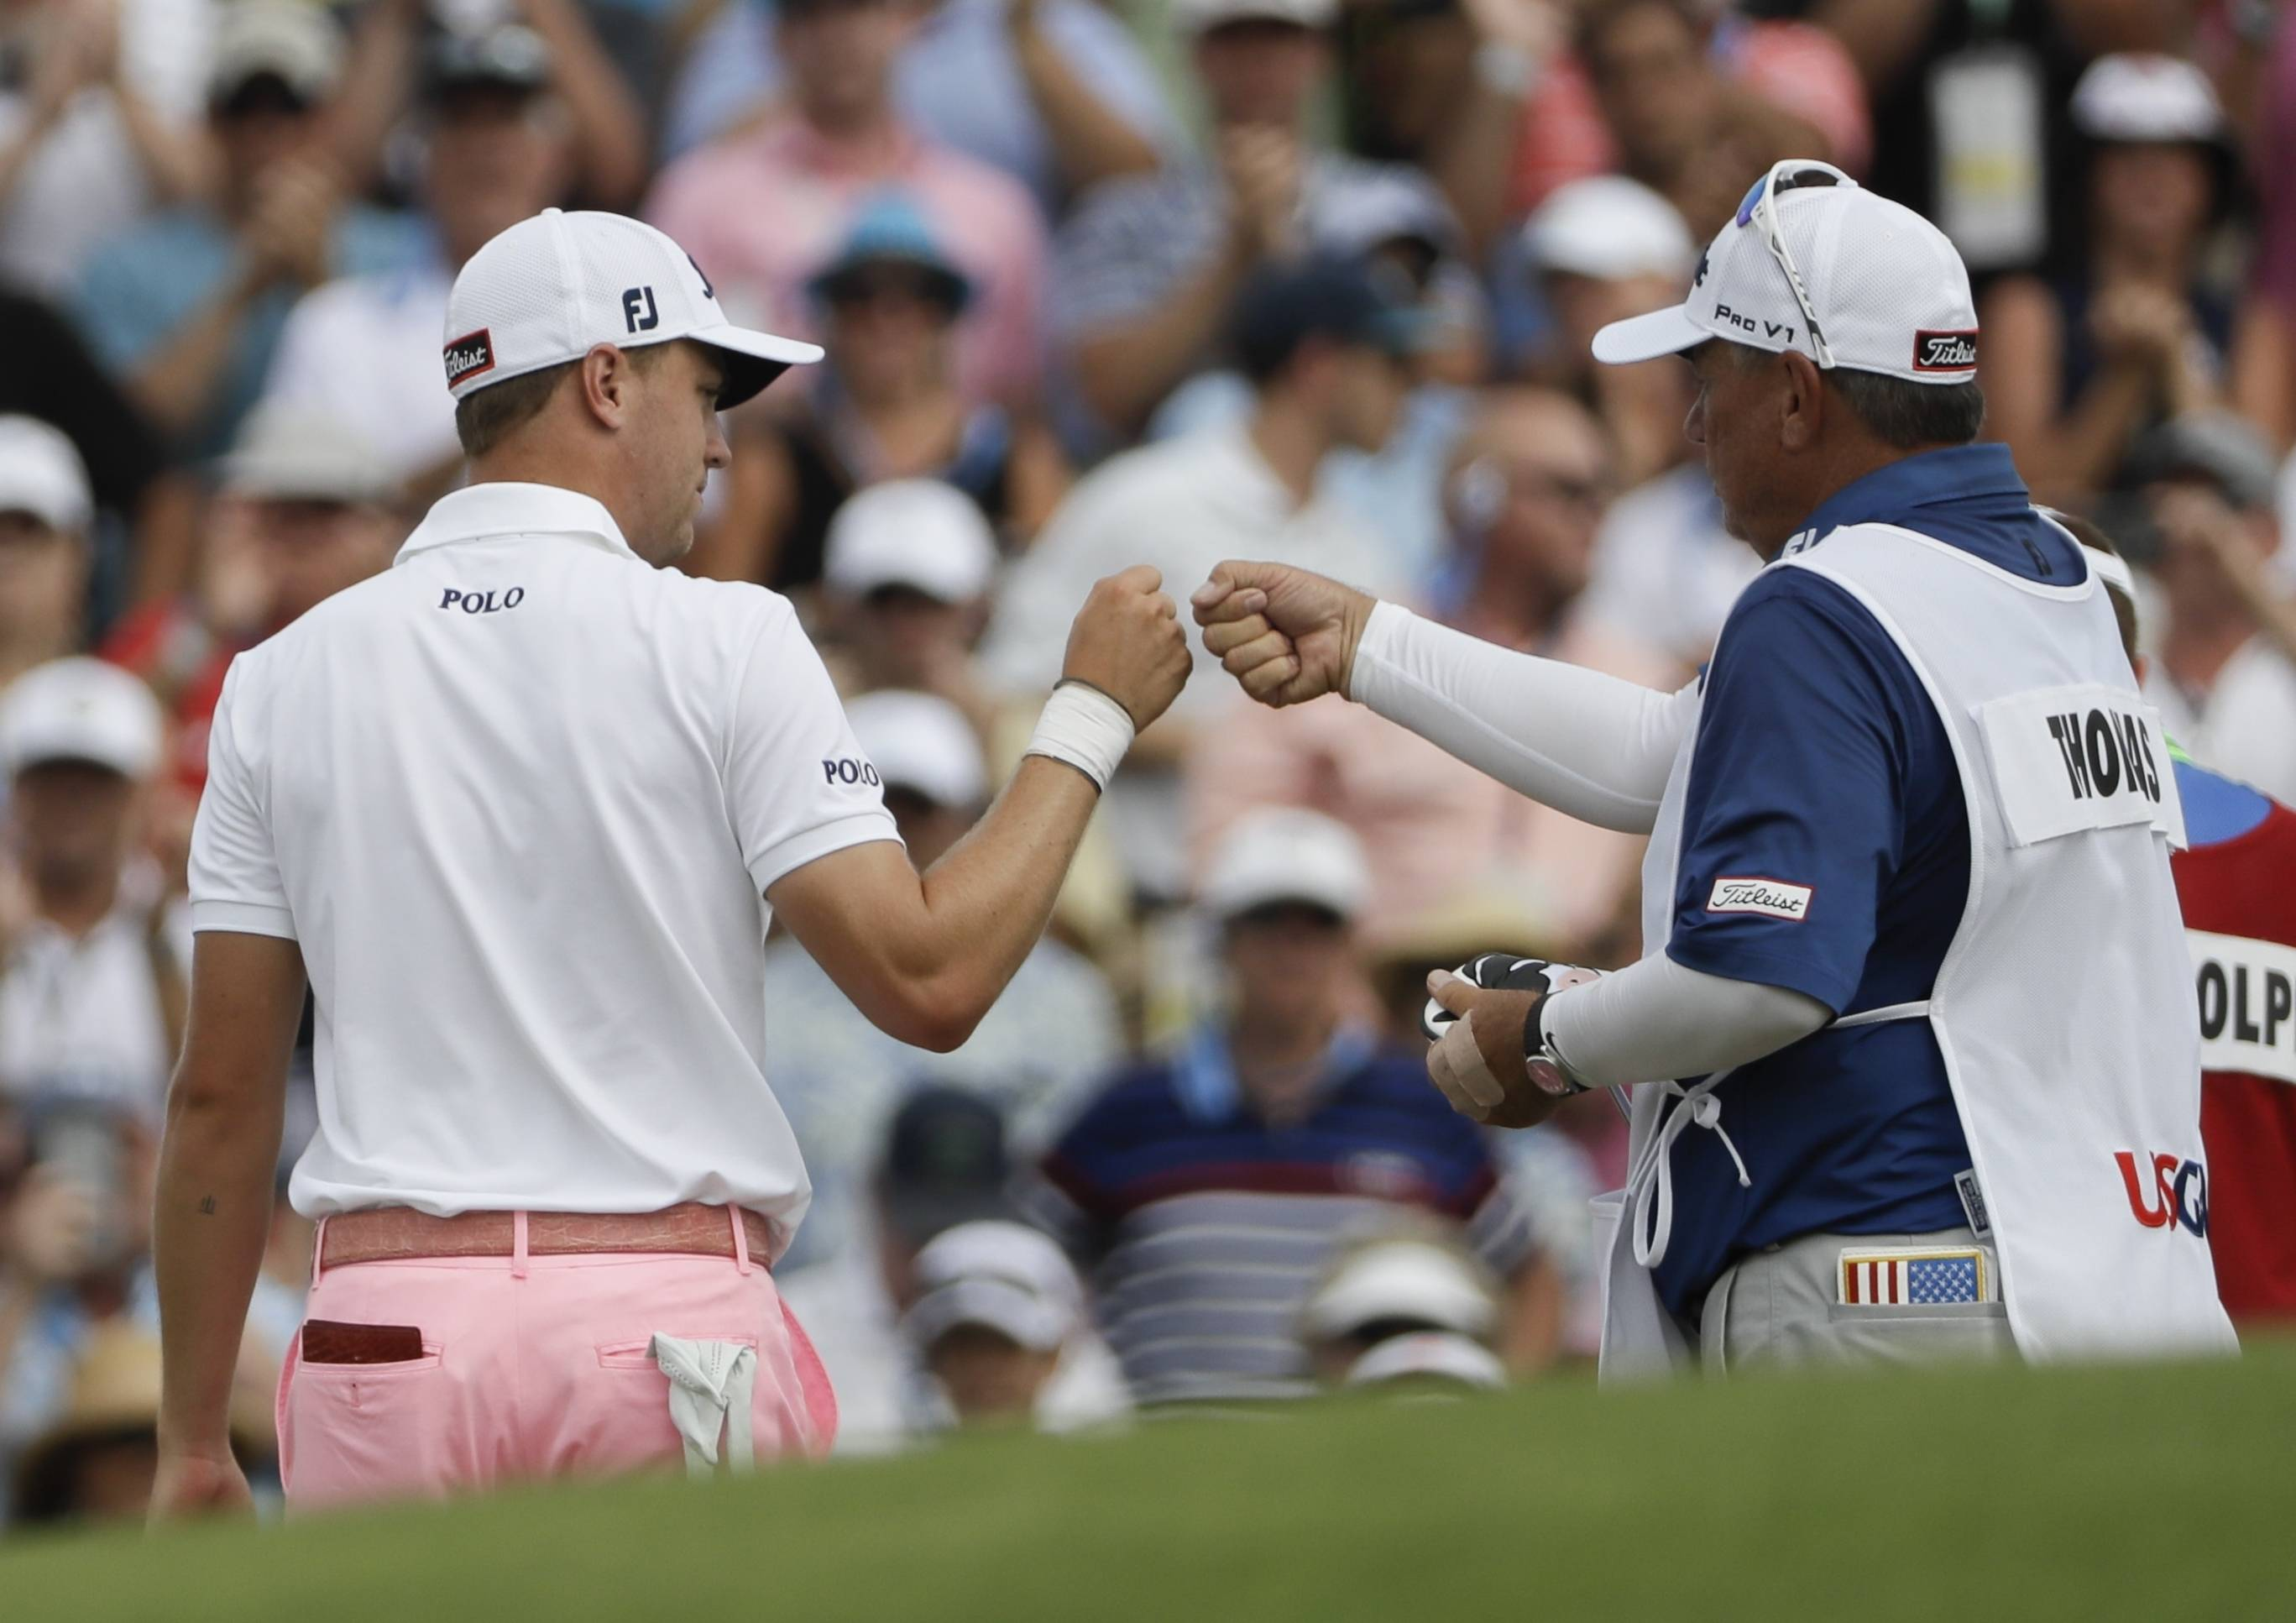 Justin Thomas is congratulated by his veteran caddie, Jimmy Johnson, after his eagle on the 18th hole during the third round of the U.S. Open at Erin Hills in Erin, Wisconsin. The two will team up this week for the Presidents Cup.